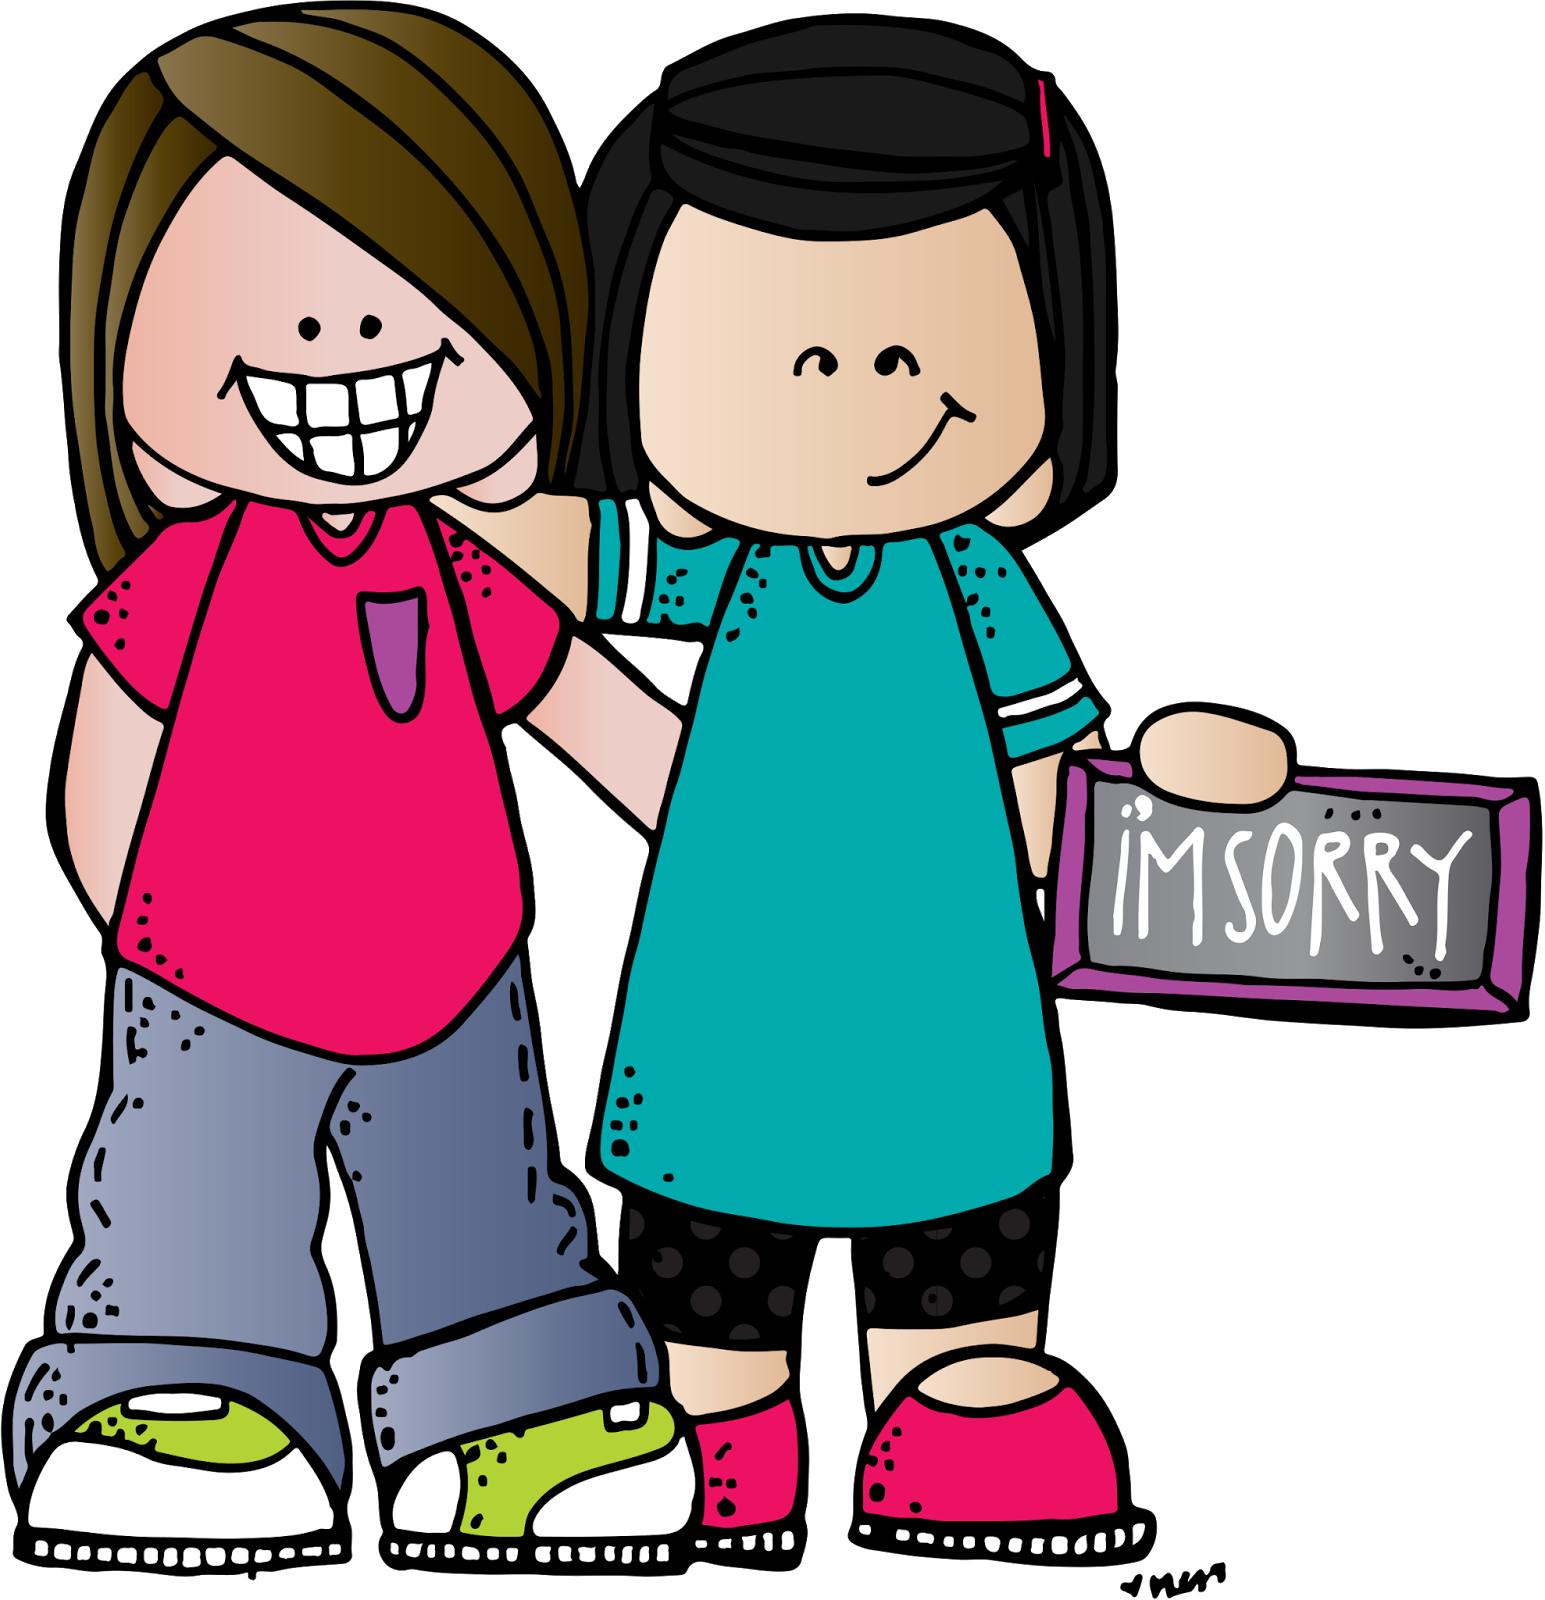 Lds clipart forgiveness. Image result for melonheadz